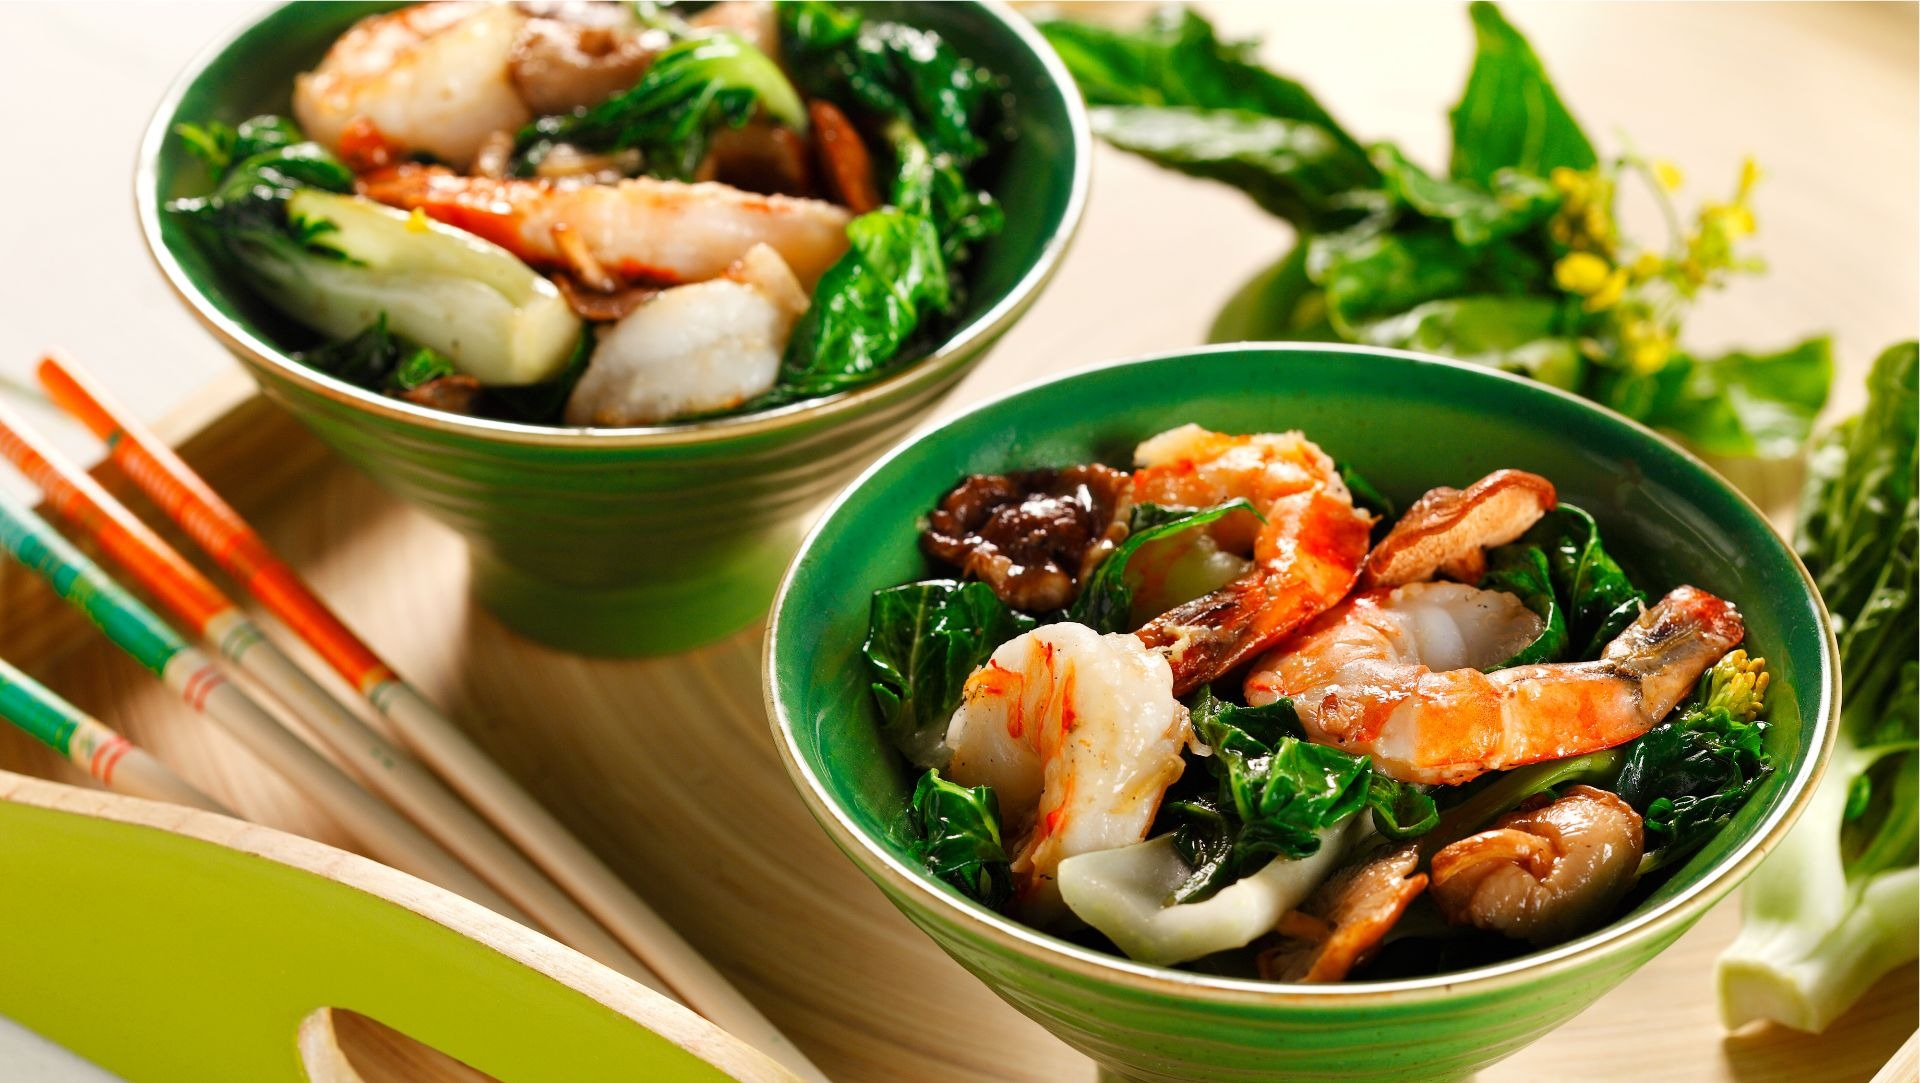 Two bowls filled with shrimp, mushrooms and bok choy on wooden serving tray with chop sticks